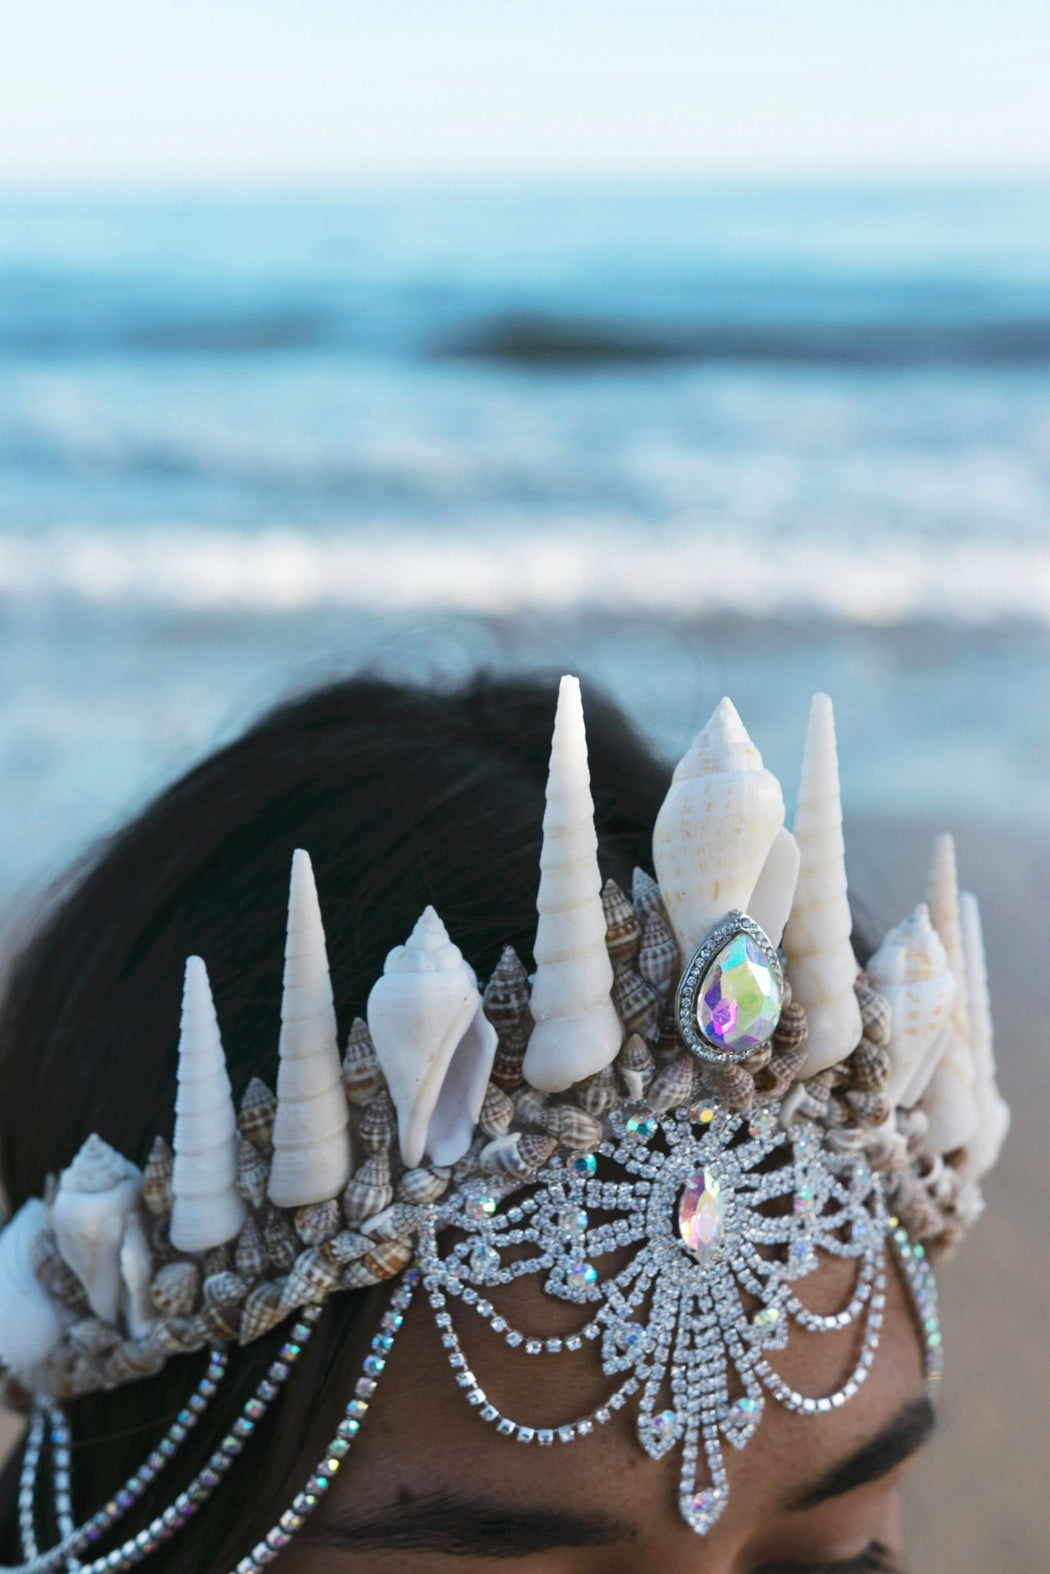 Galactic Magic Mermaid Tiara - Wild & Free Jewelry